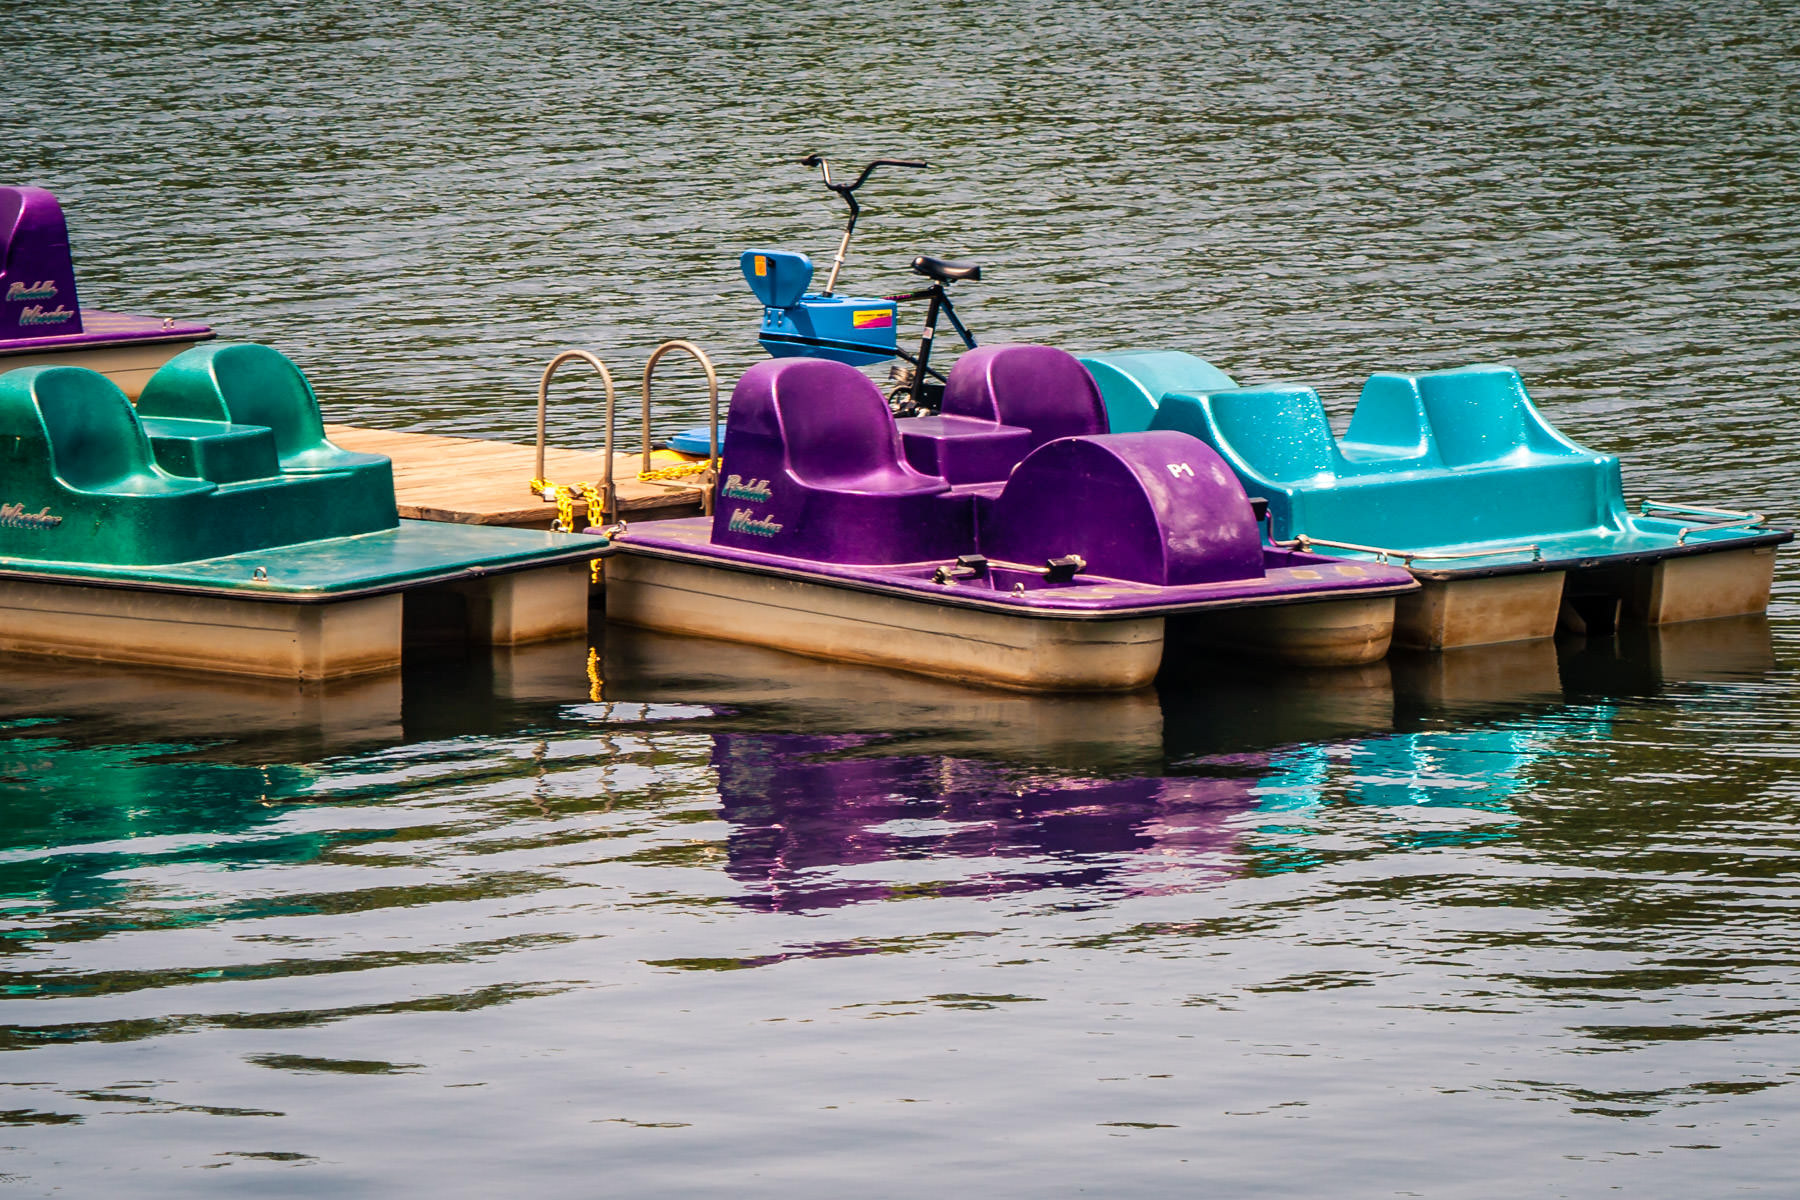 Paddle boats for rent at Tyler State Park, Texas.